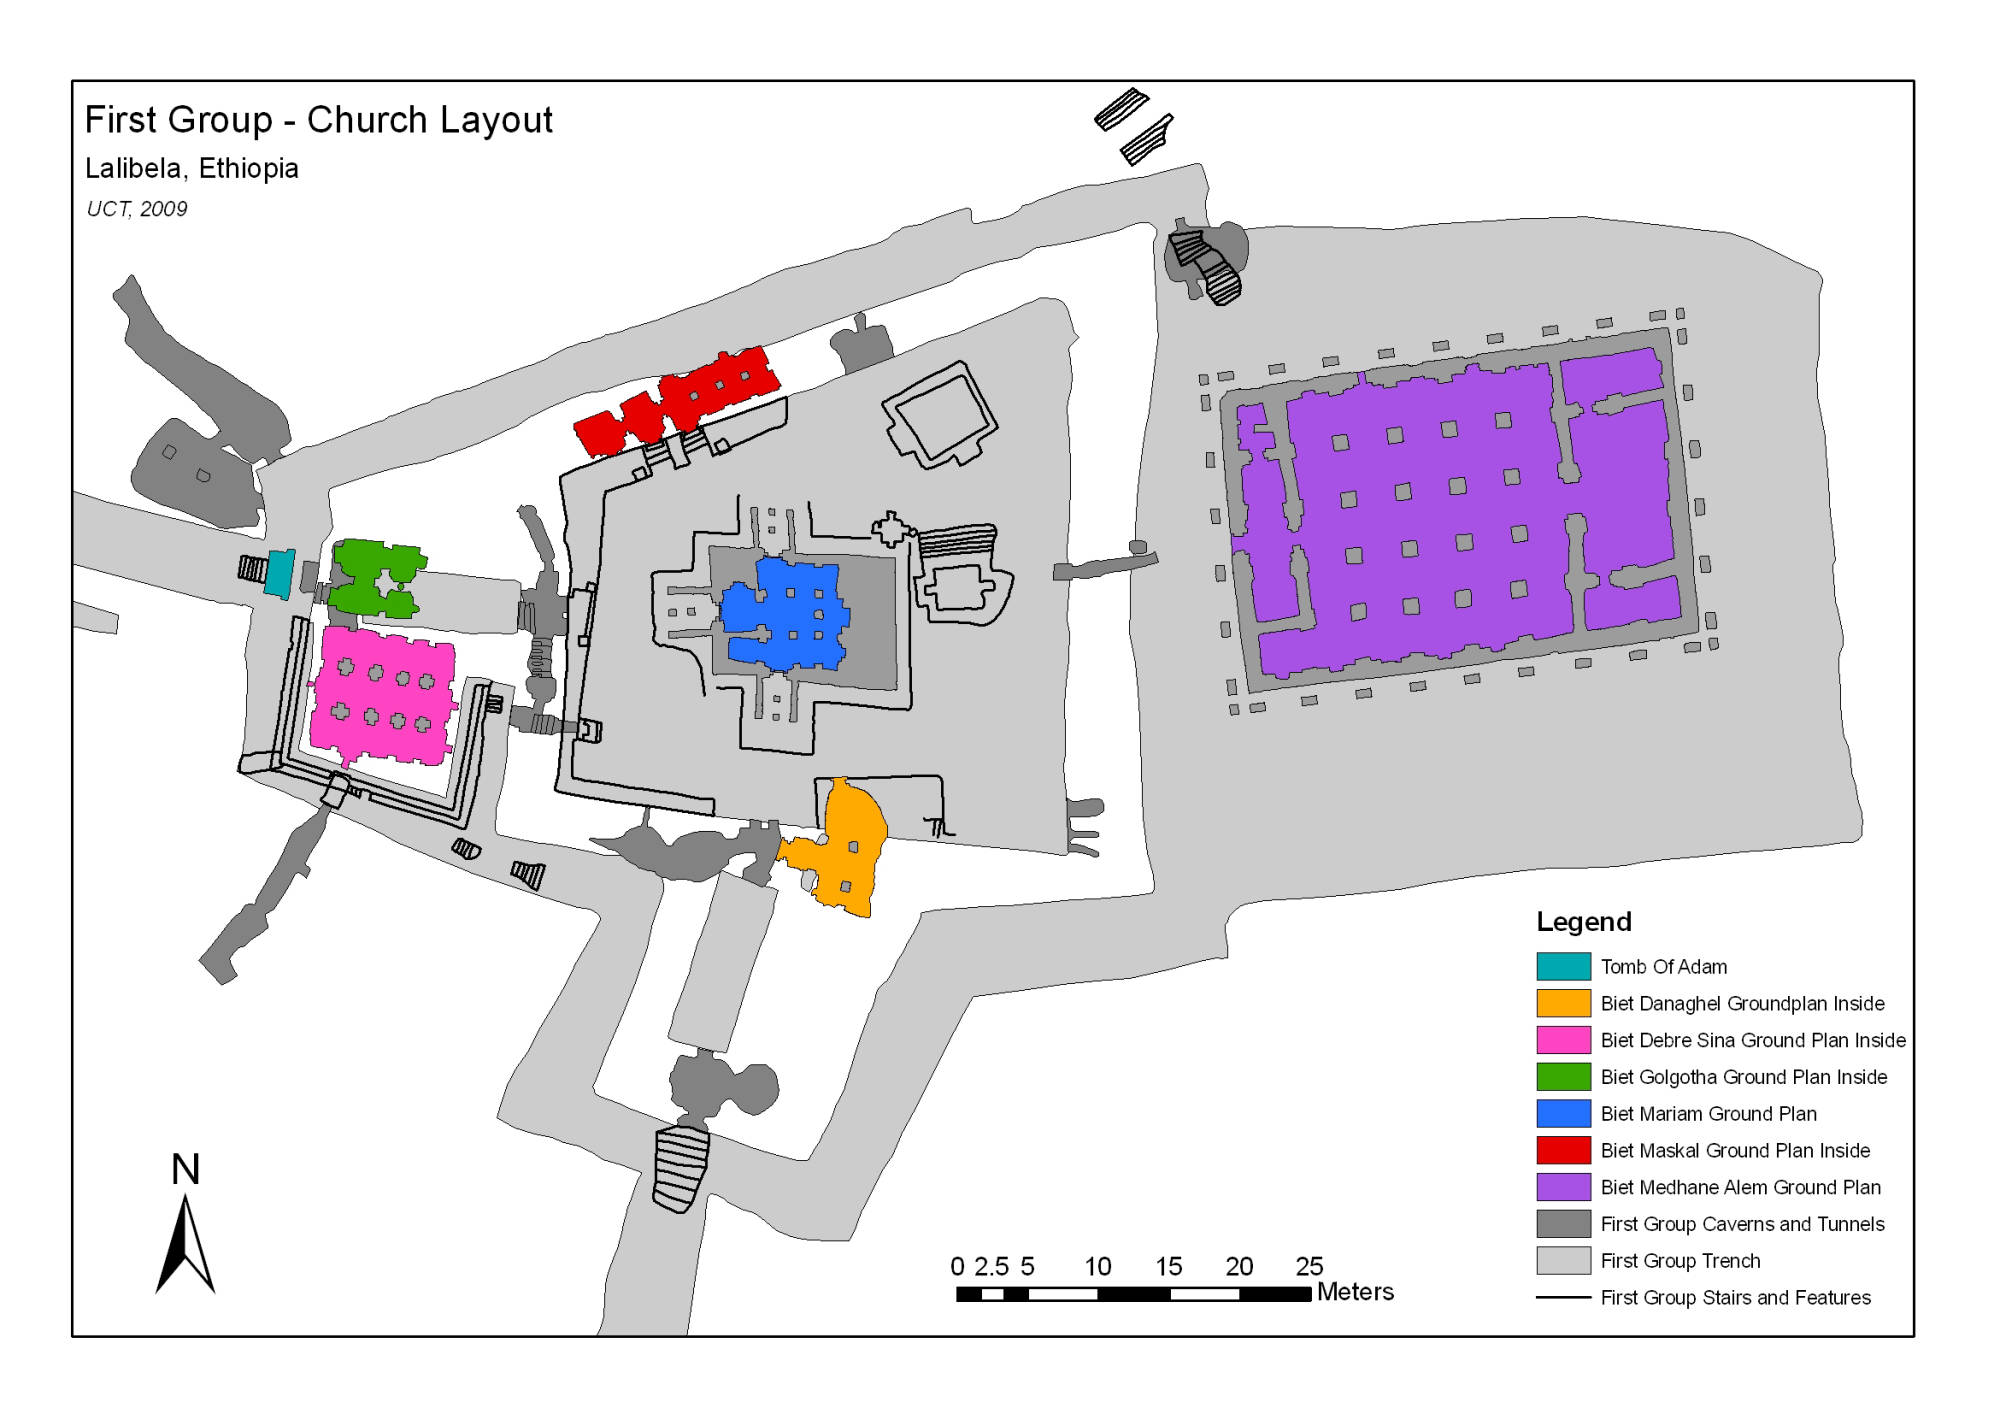 GIS Layout 2 of the 1st Group